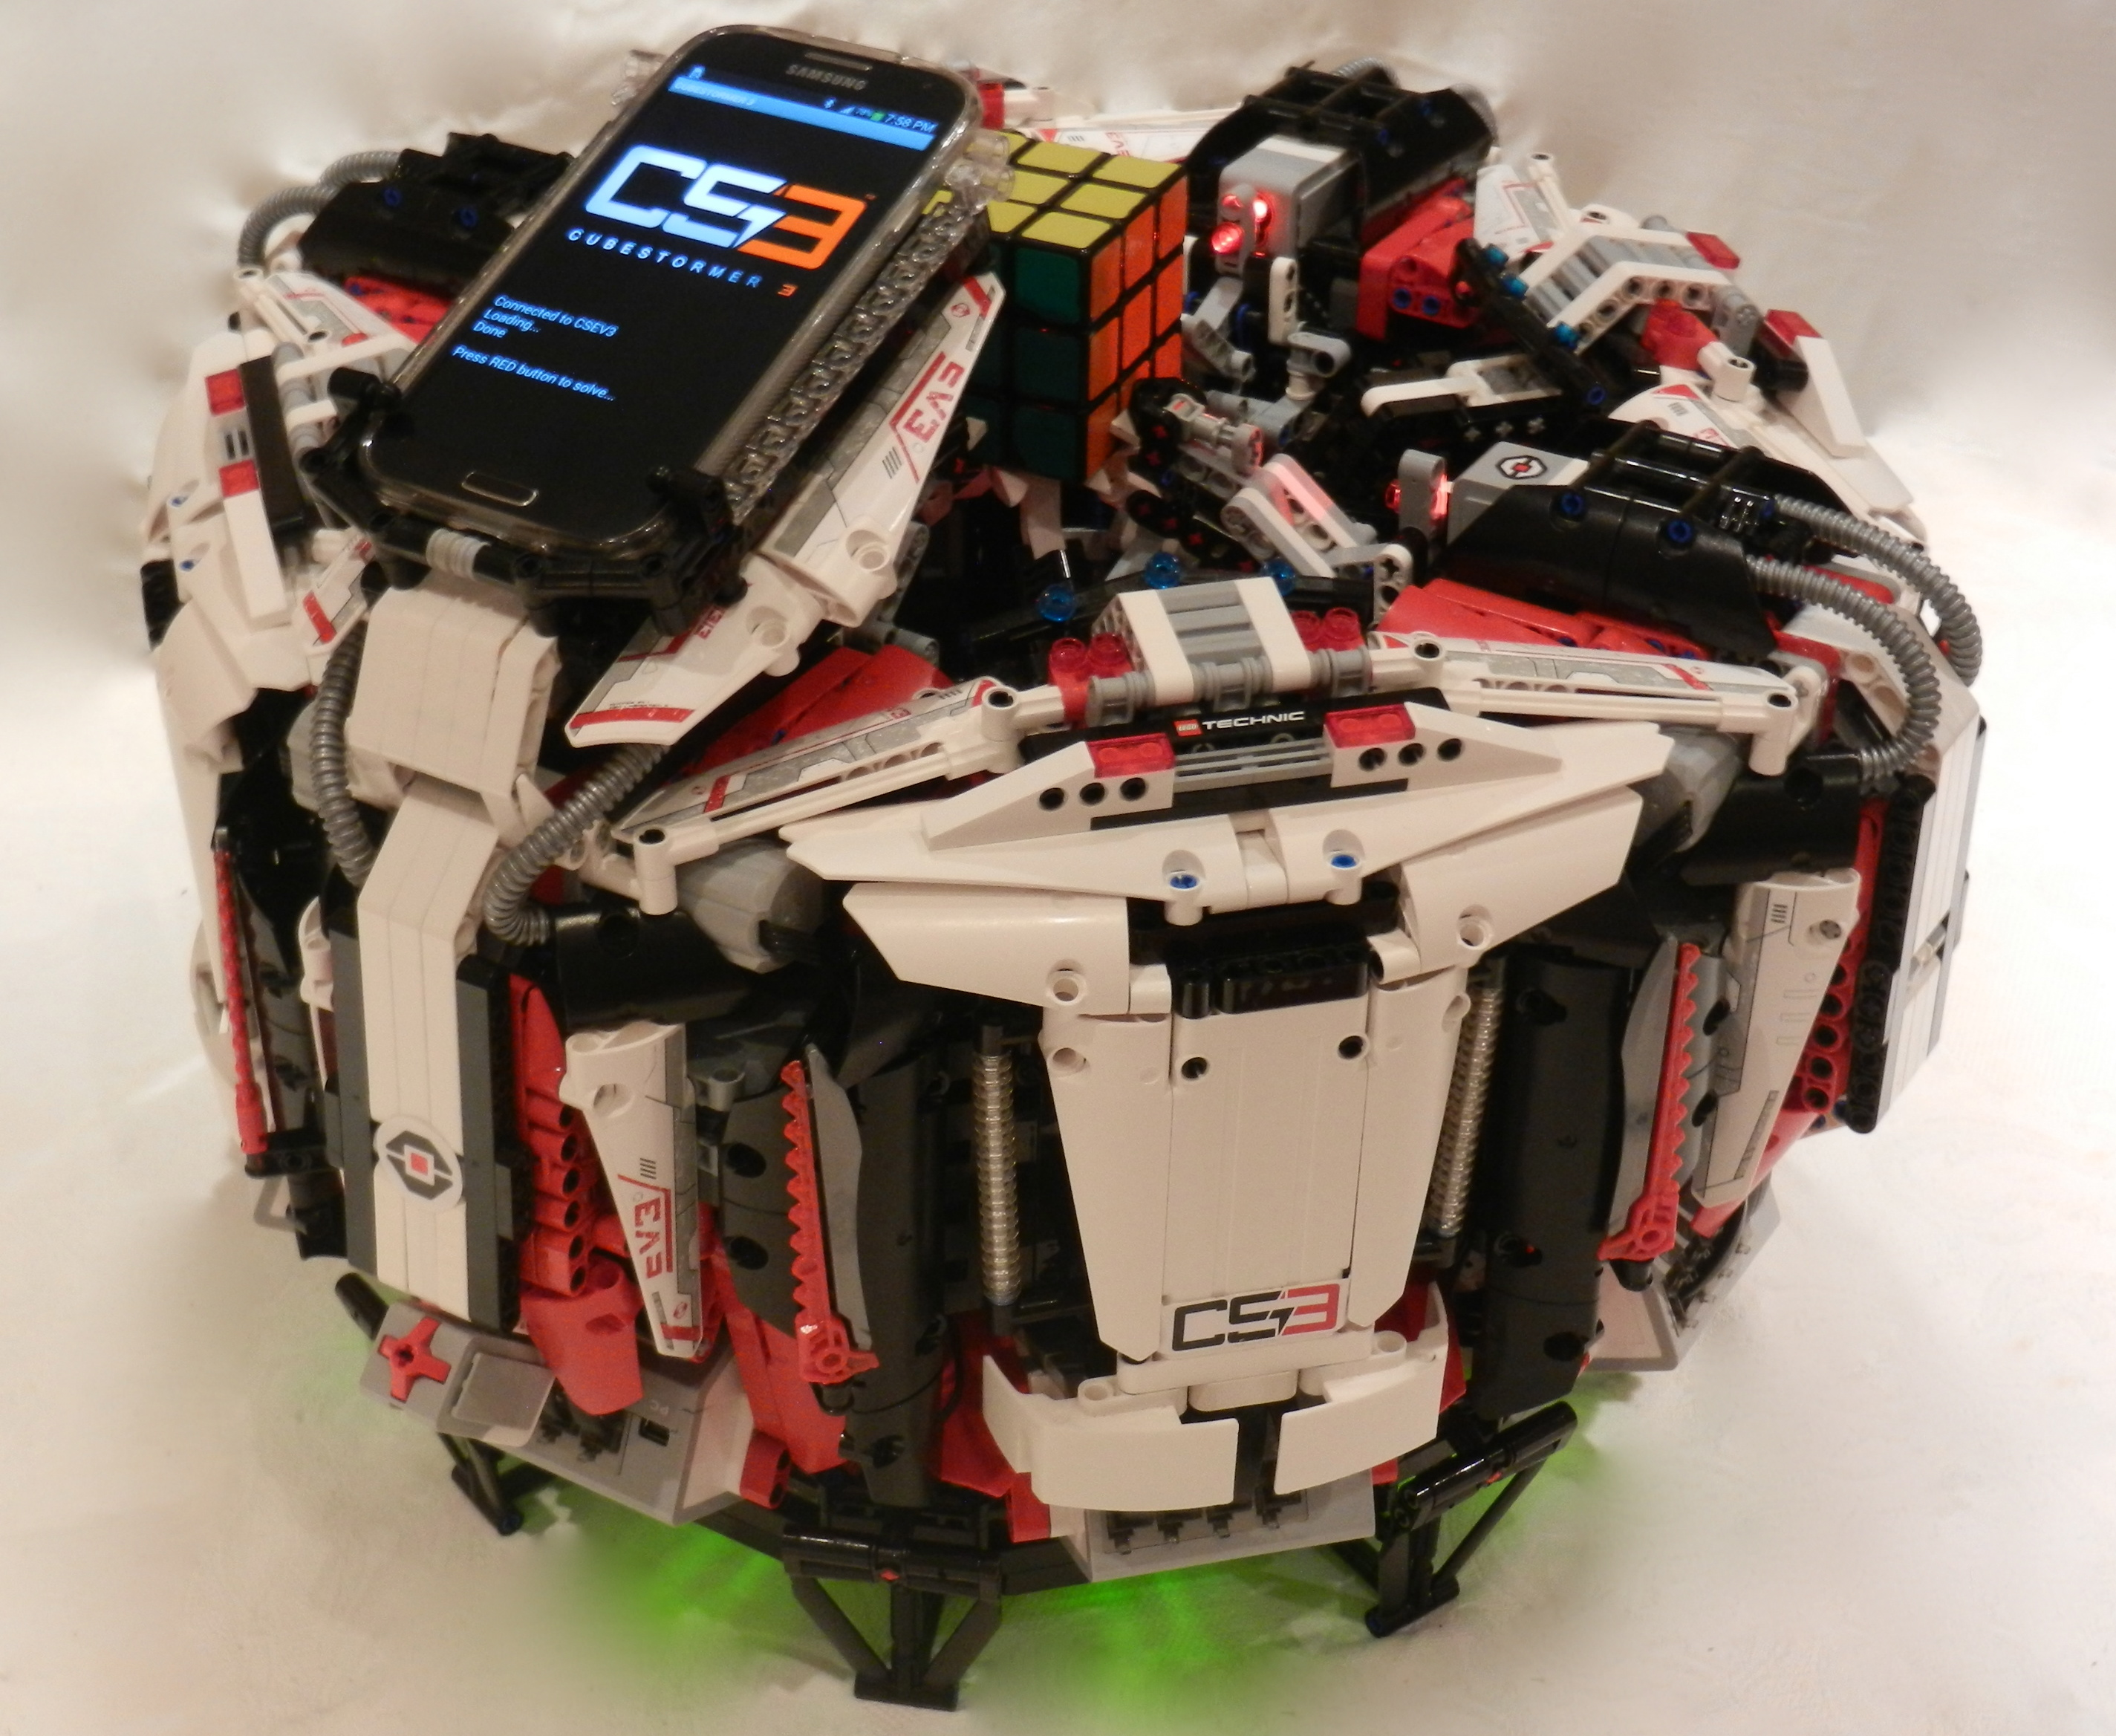 LEGO Robot Solves Rubik's Cube in World Record Time